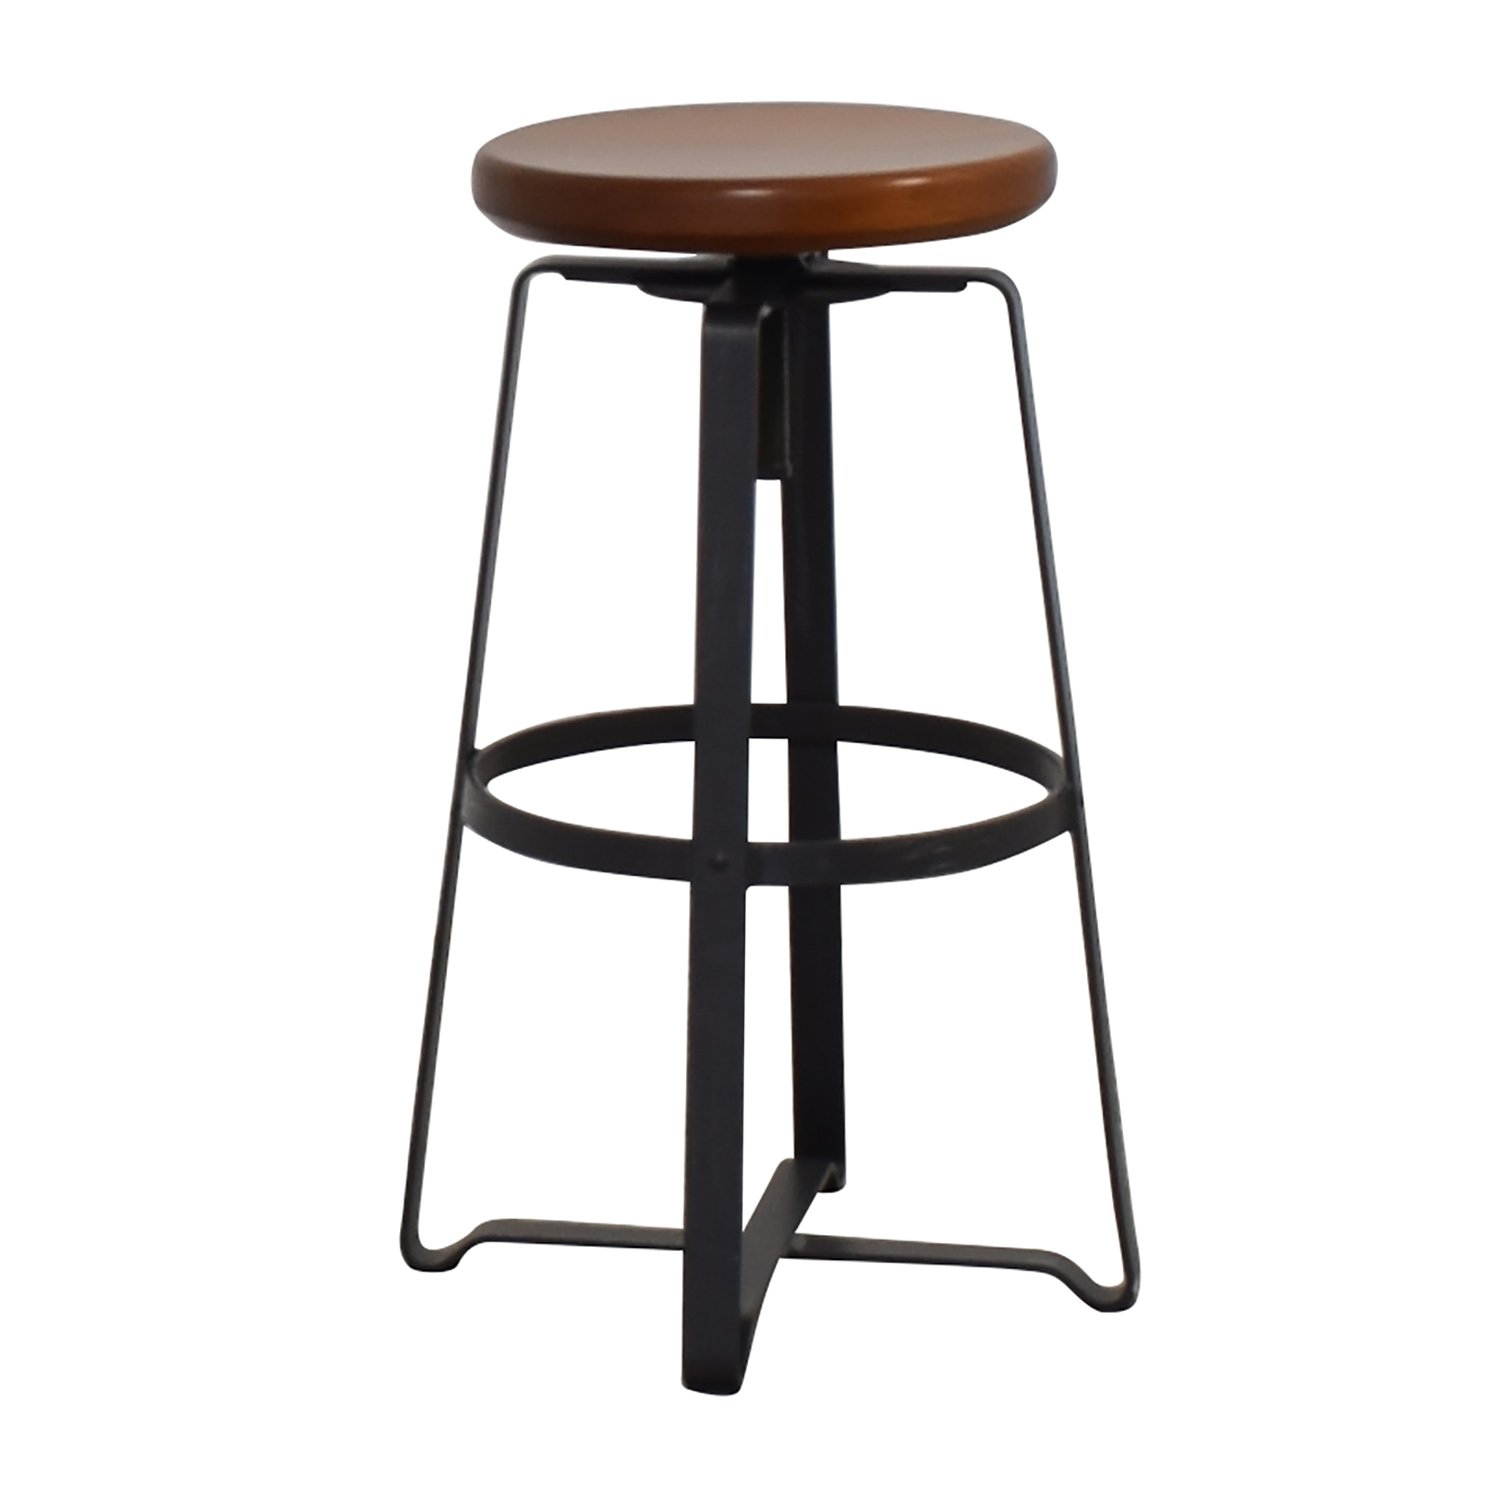 shop West Elm Adjustable Industrial Stool West Elm Chairs